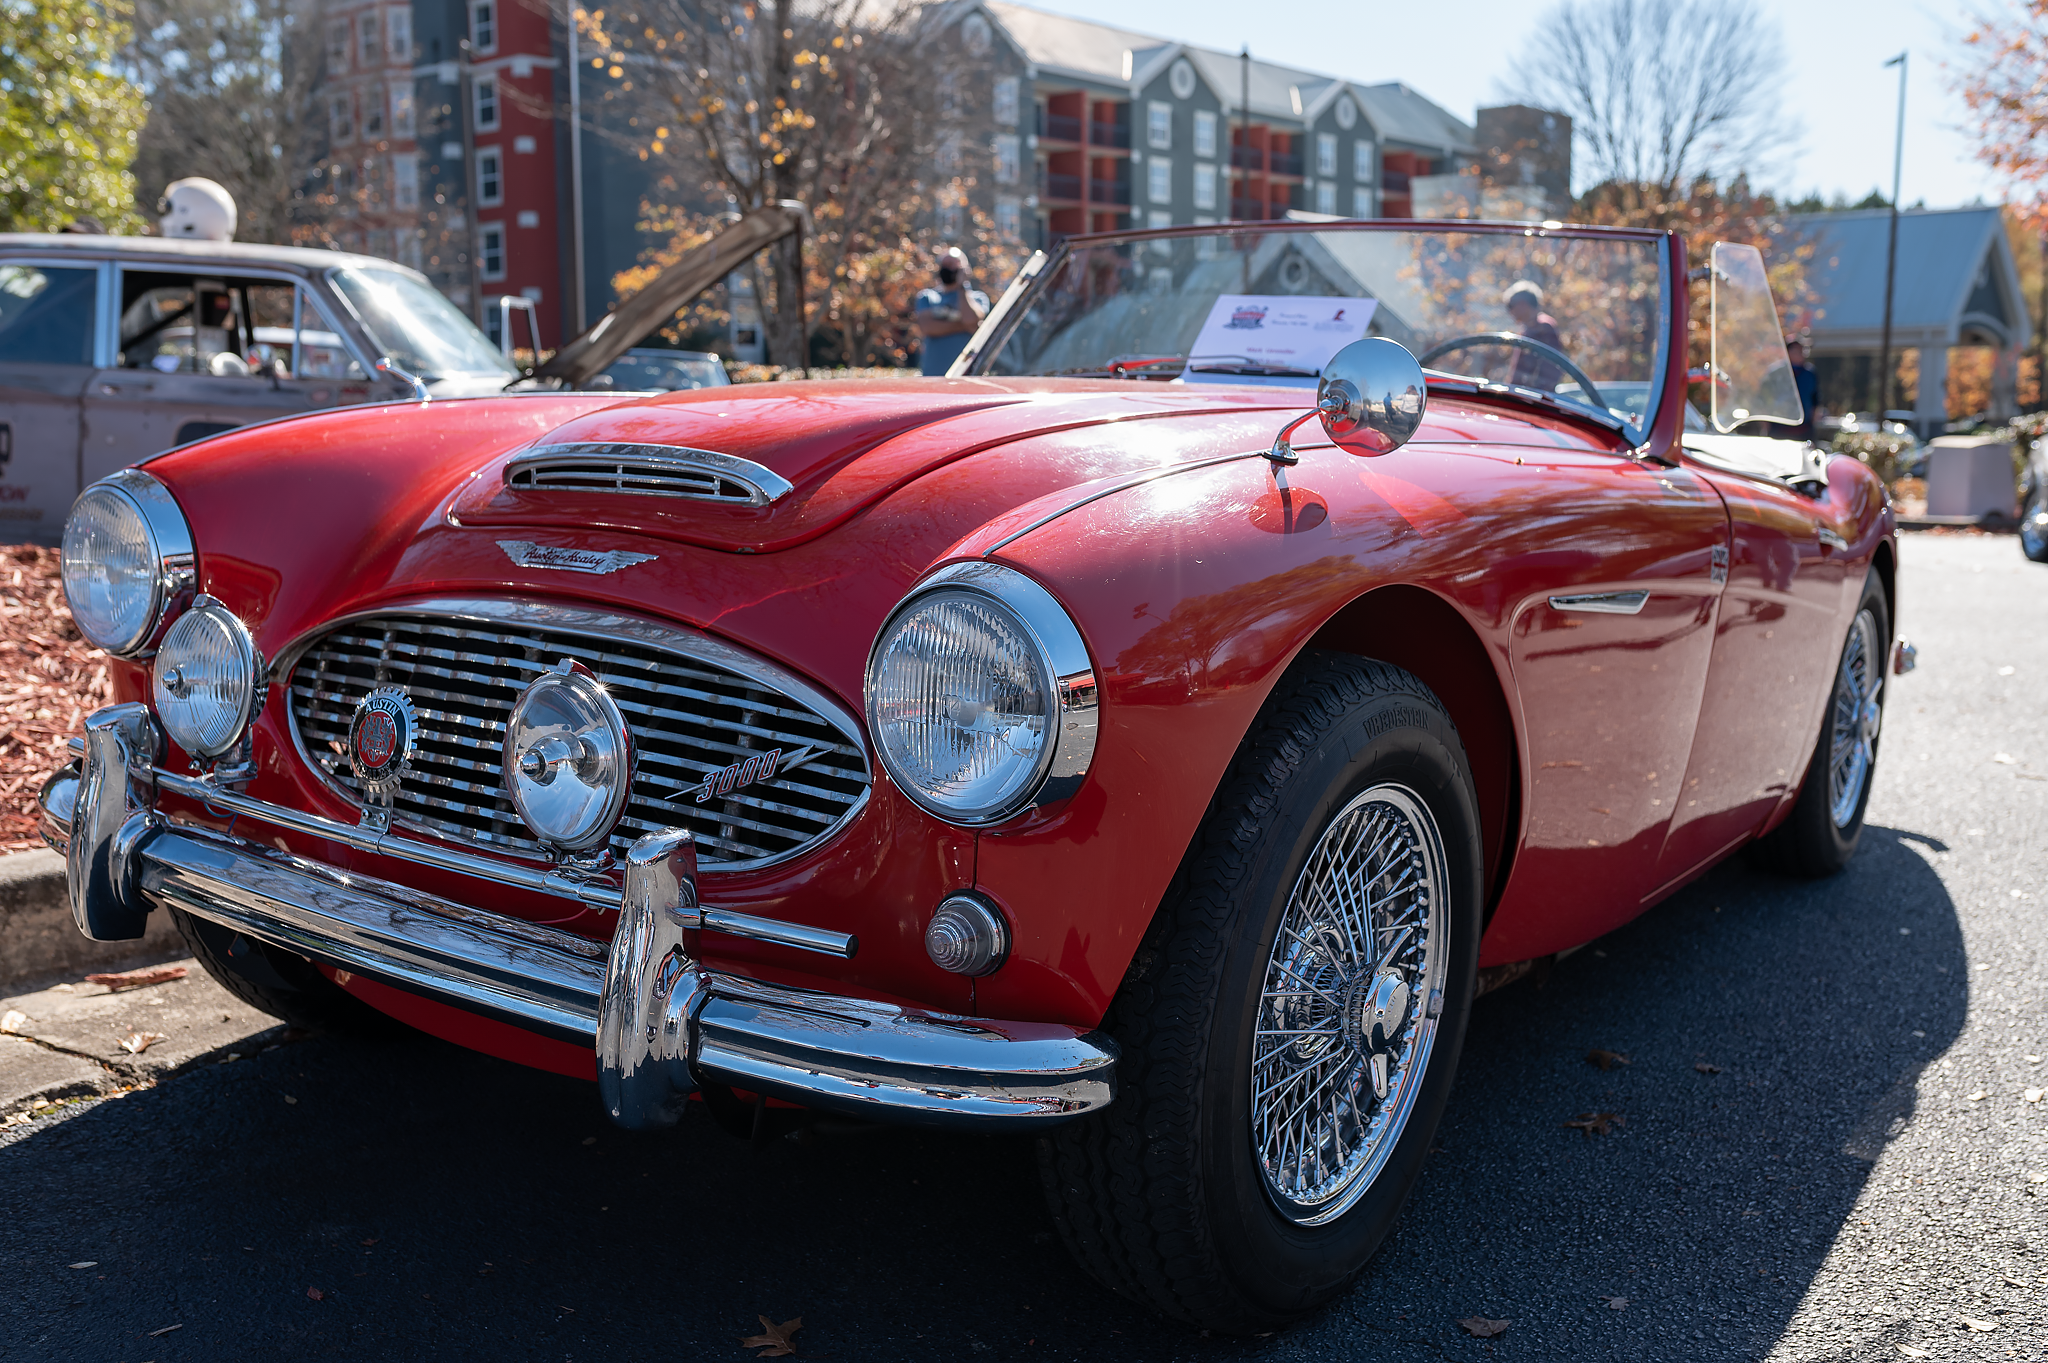 Southwick-Images-Roswell-Motoring-Festival-2020-094 (1)